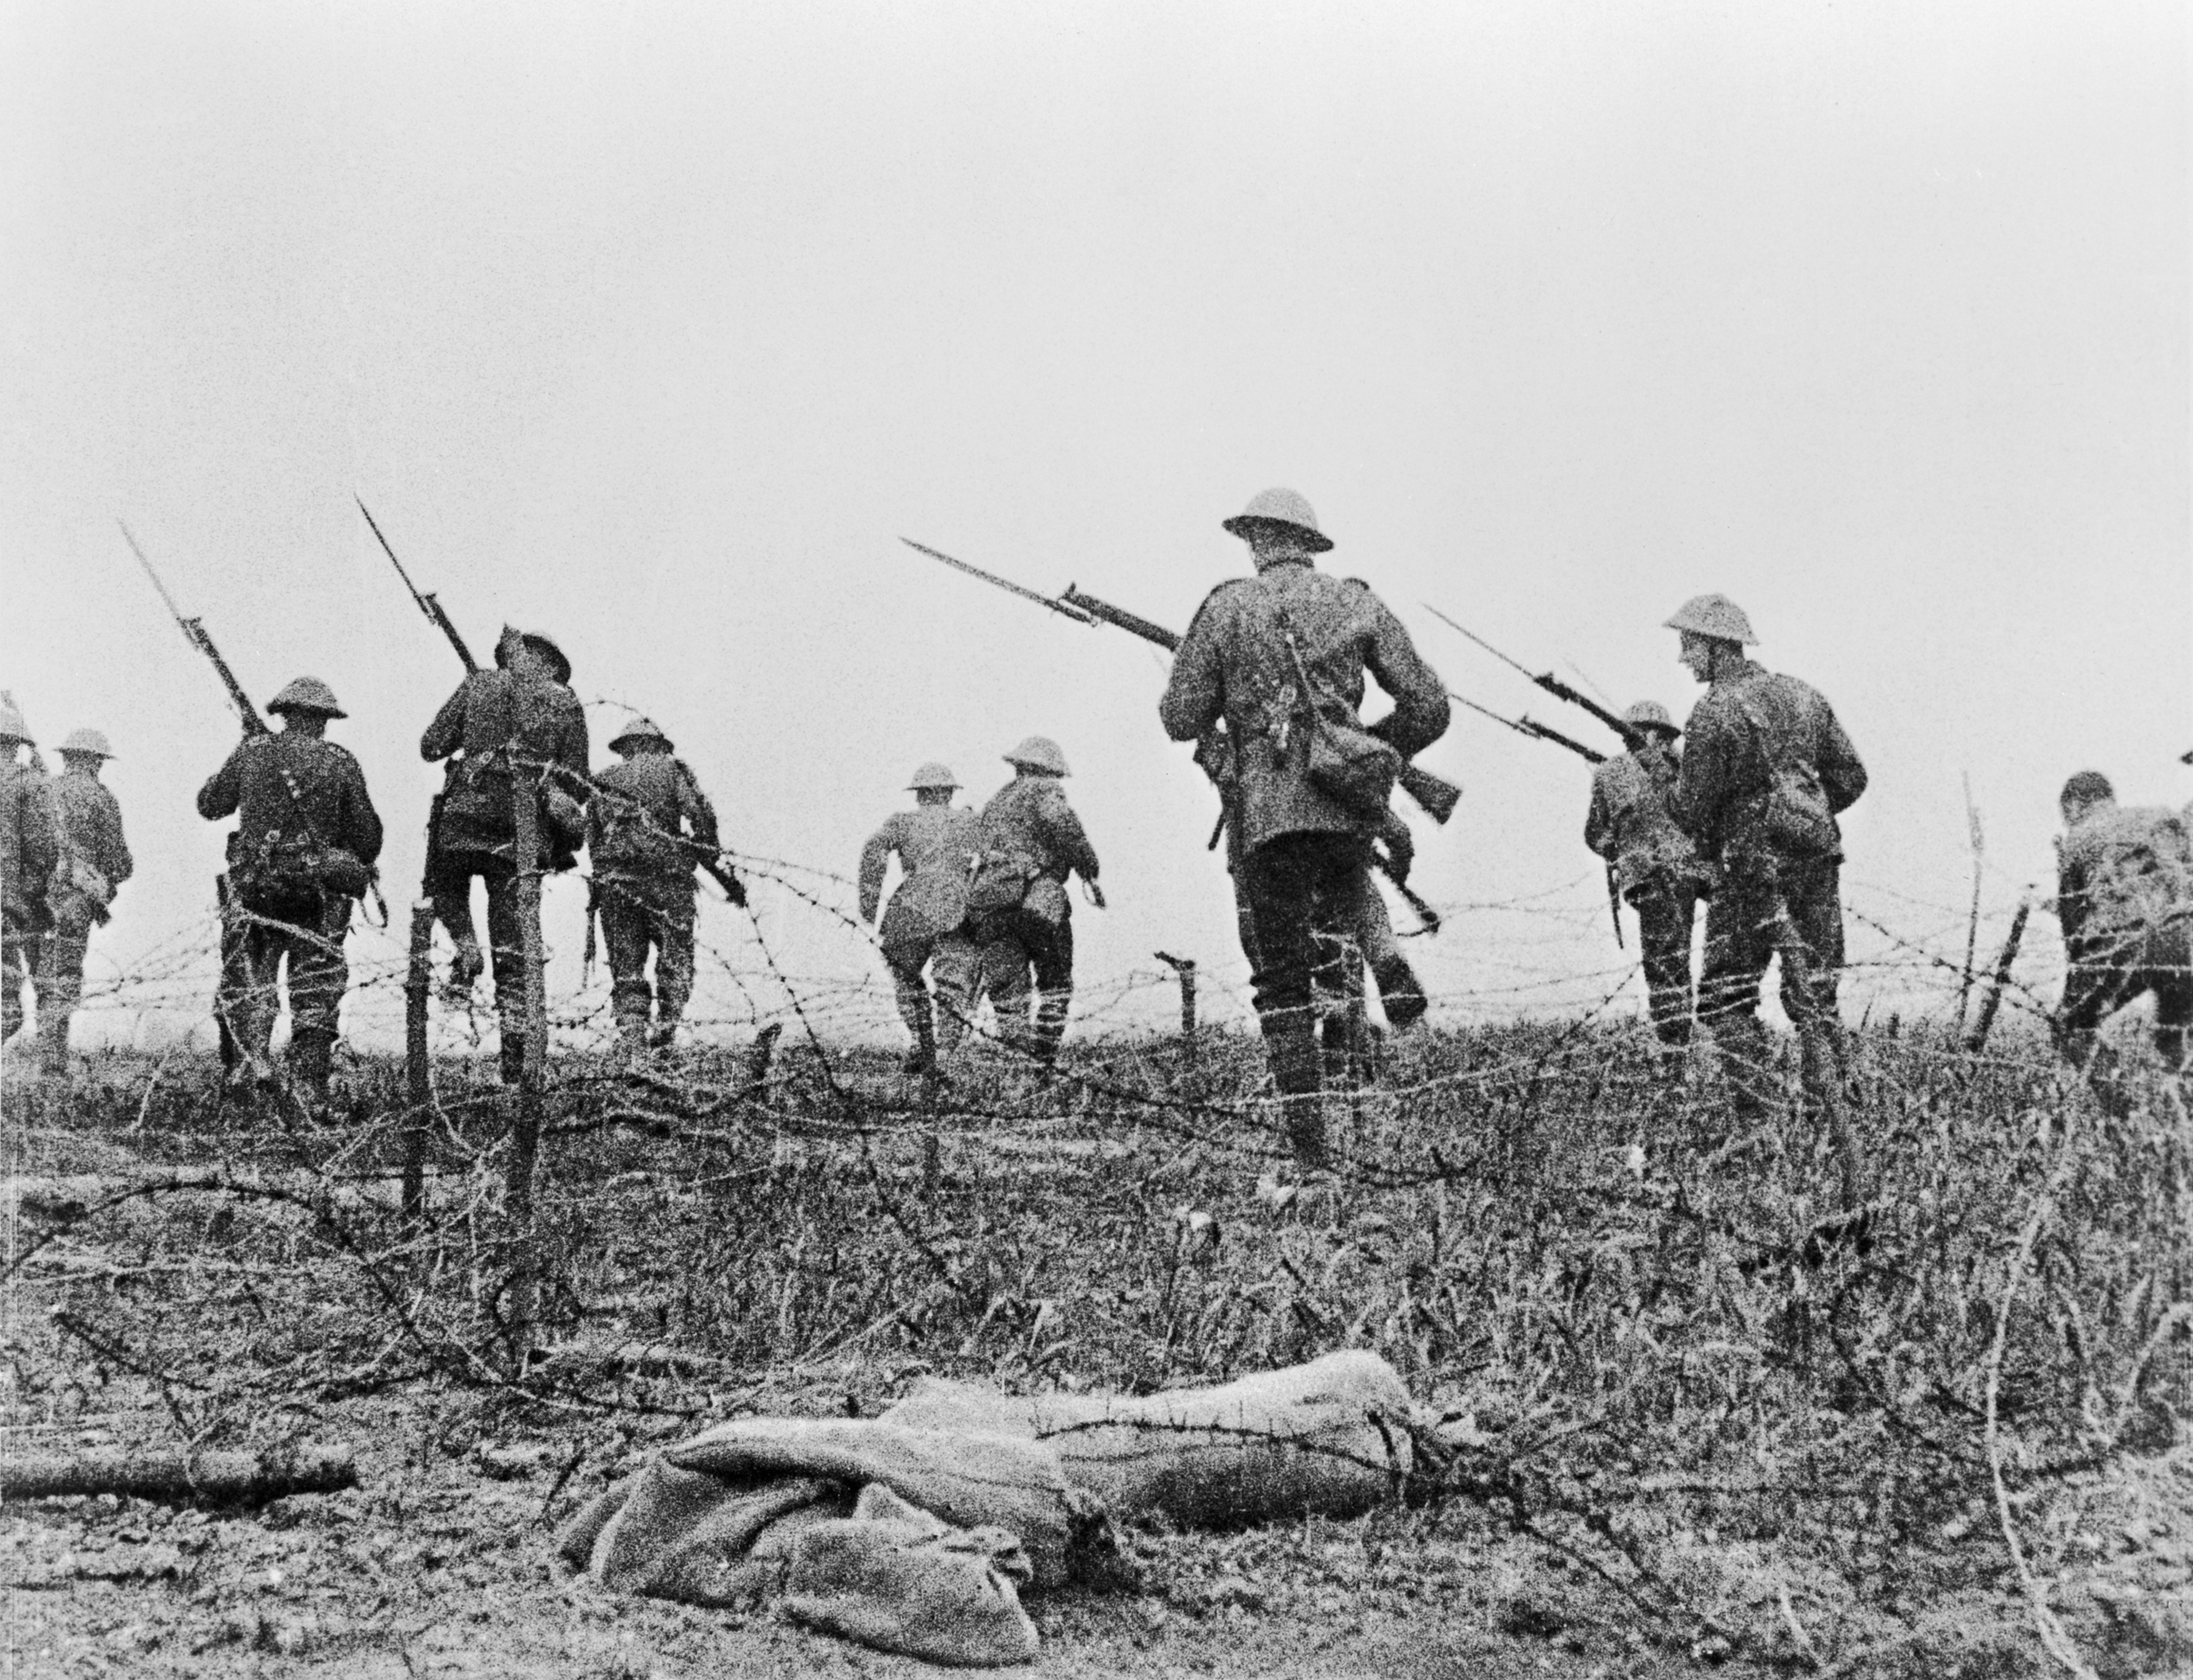 battles of ww1 Find a summary, definition and facts about american battles in ww1 for kids american battles in ww1 and events abroad information about american battles in ww1 for kids, children, homework and schools.